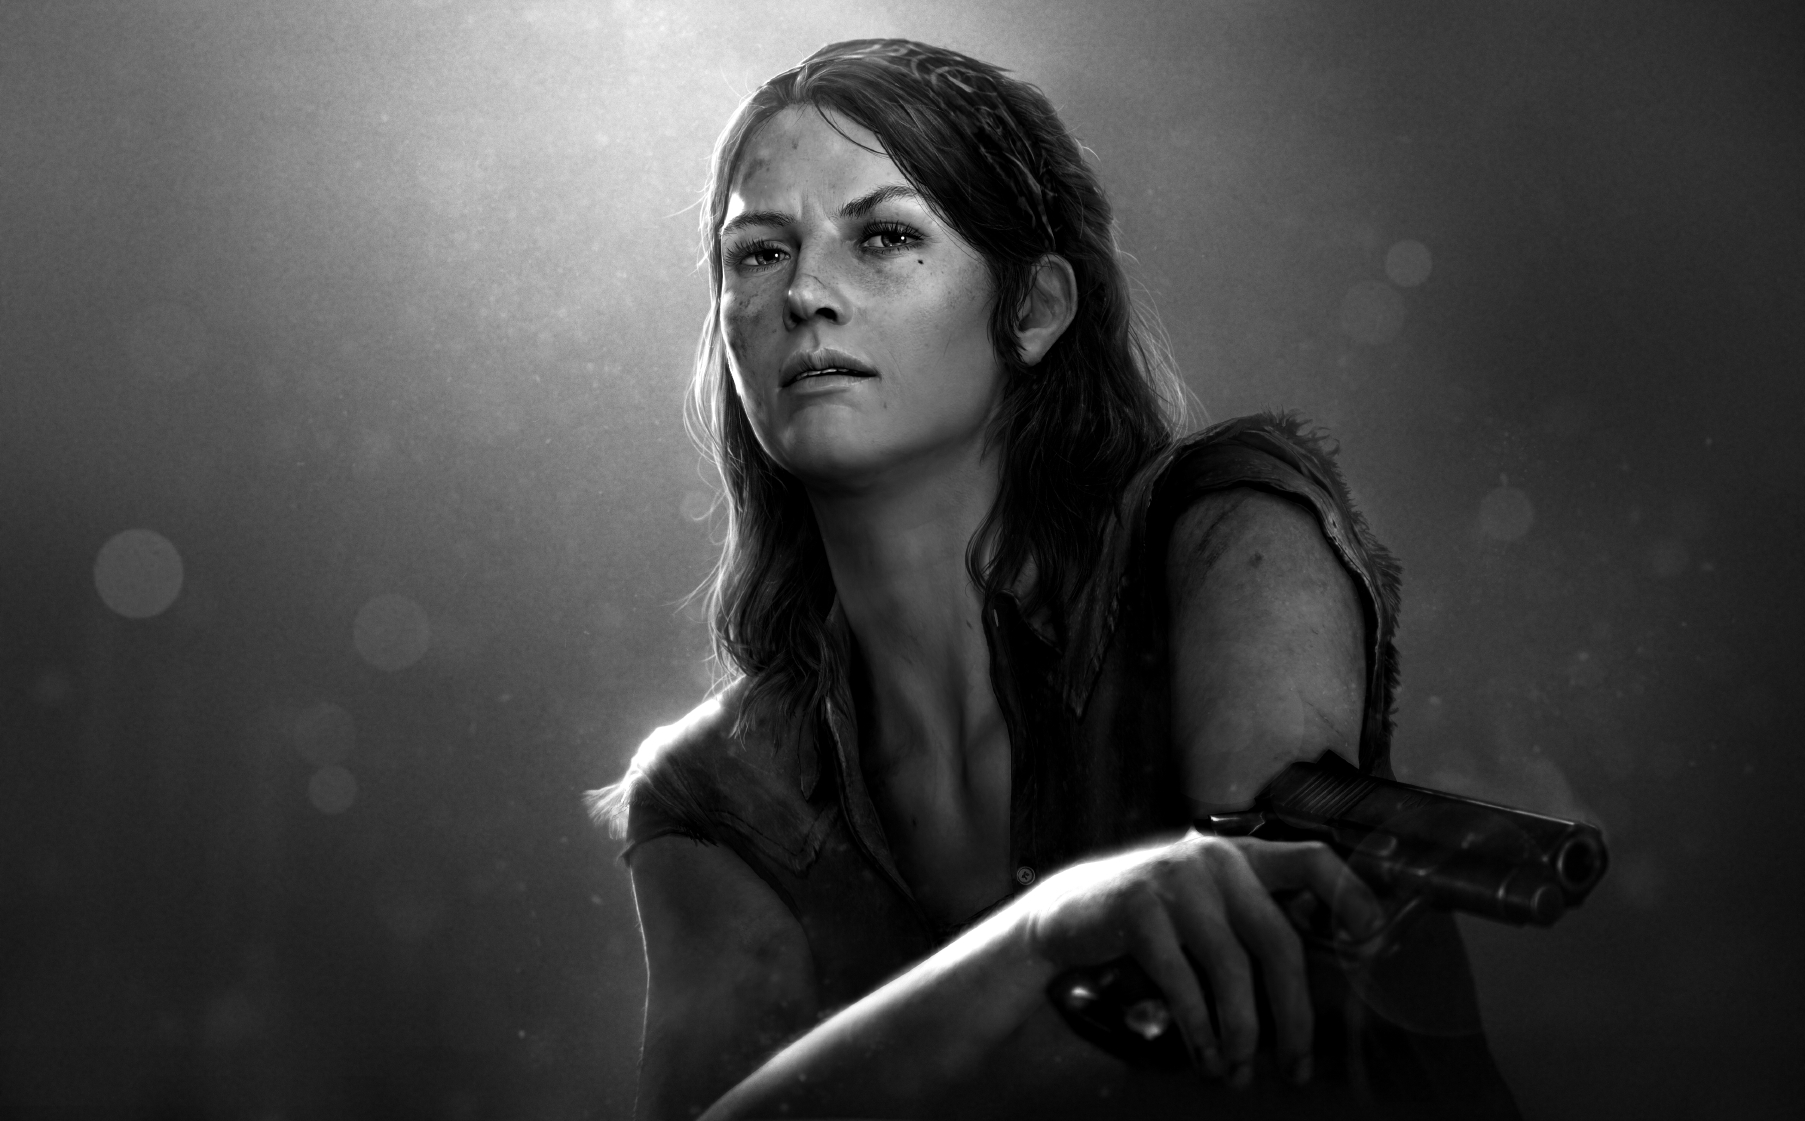 The Last Of Us Tess Wallpapers - Tess The Last Of Us , HD Wallpaper & Backgrounds